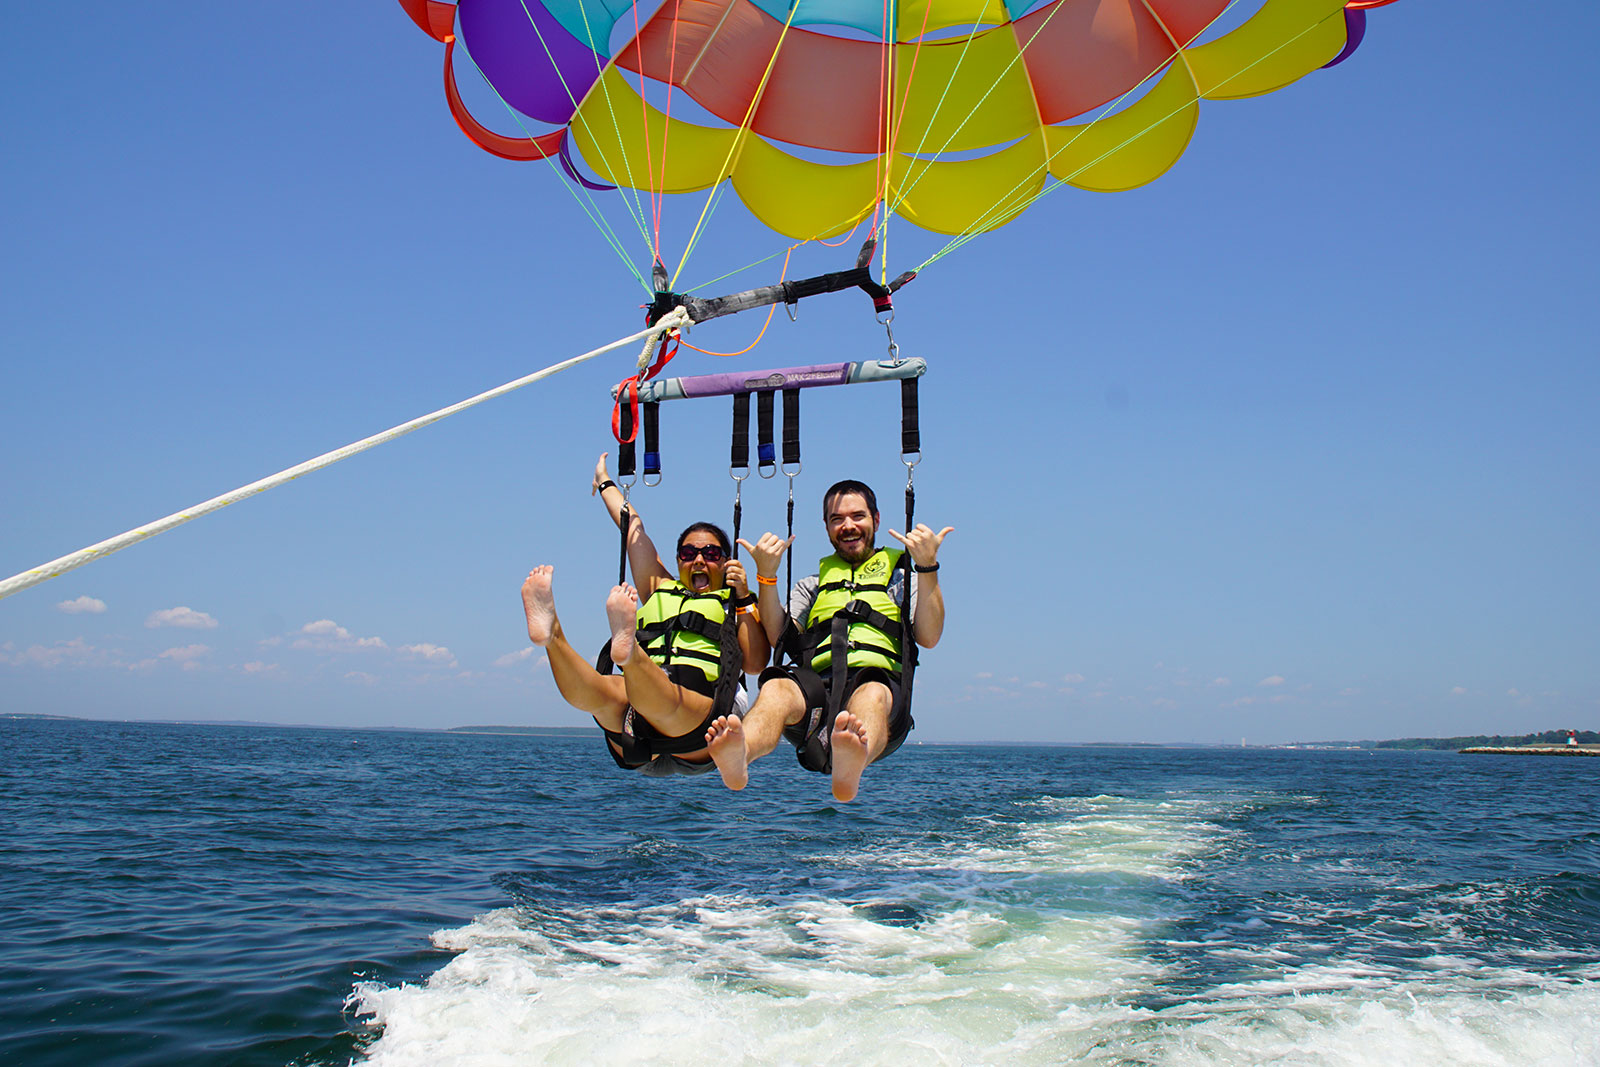 Mike and Kelsey launching with Island Style Parasail